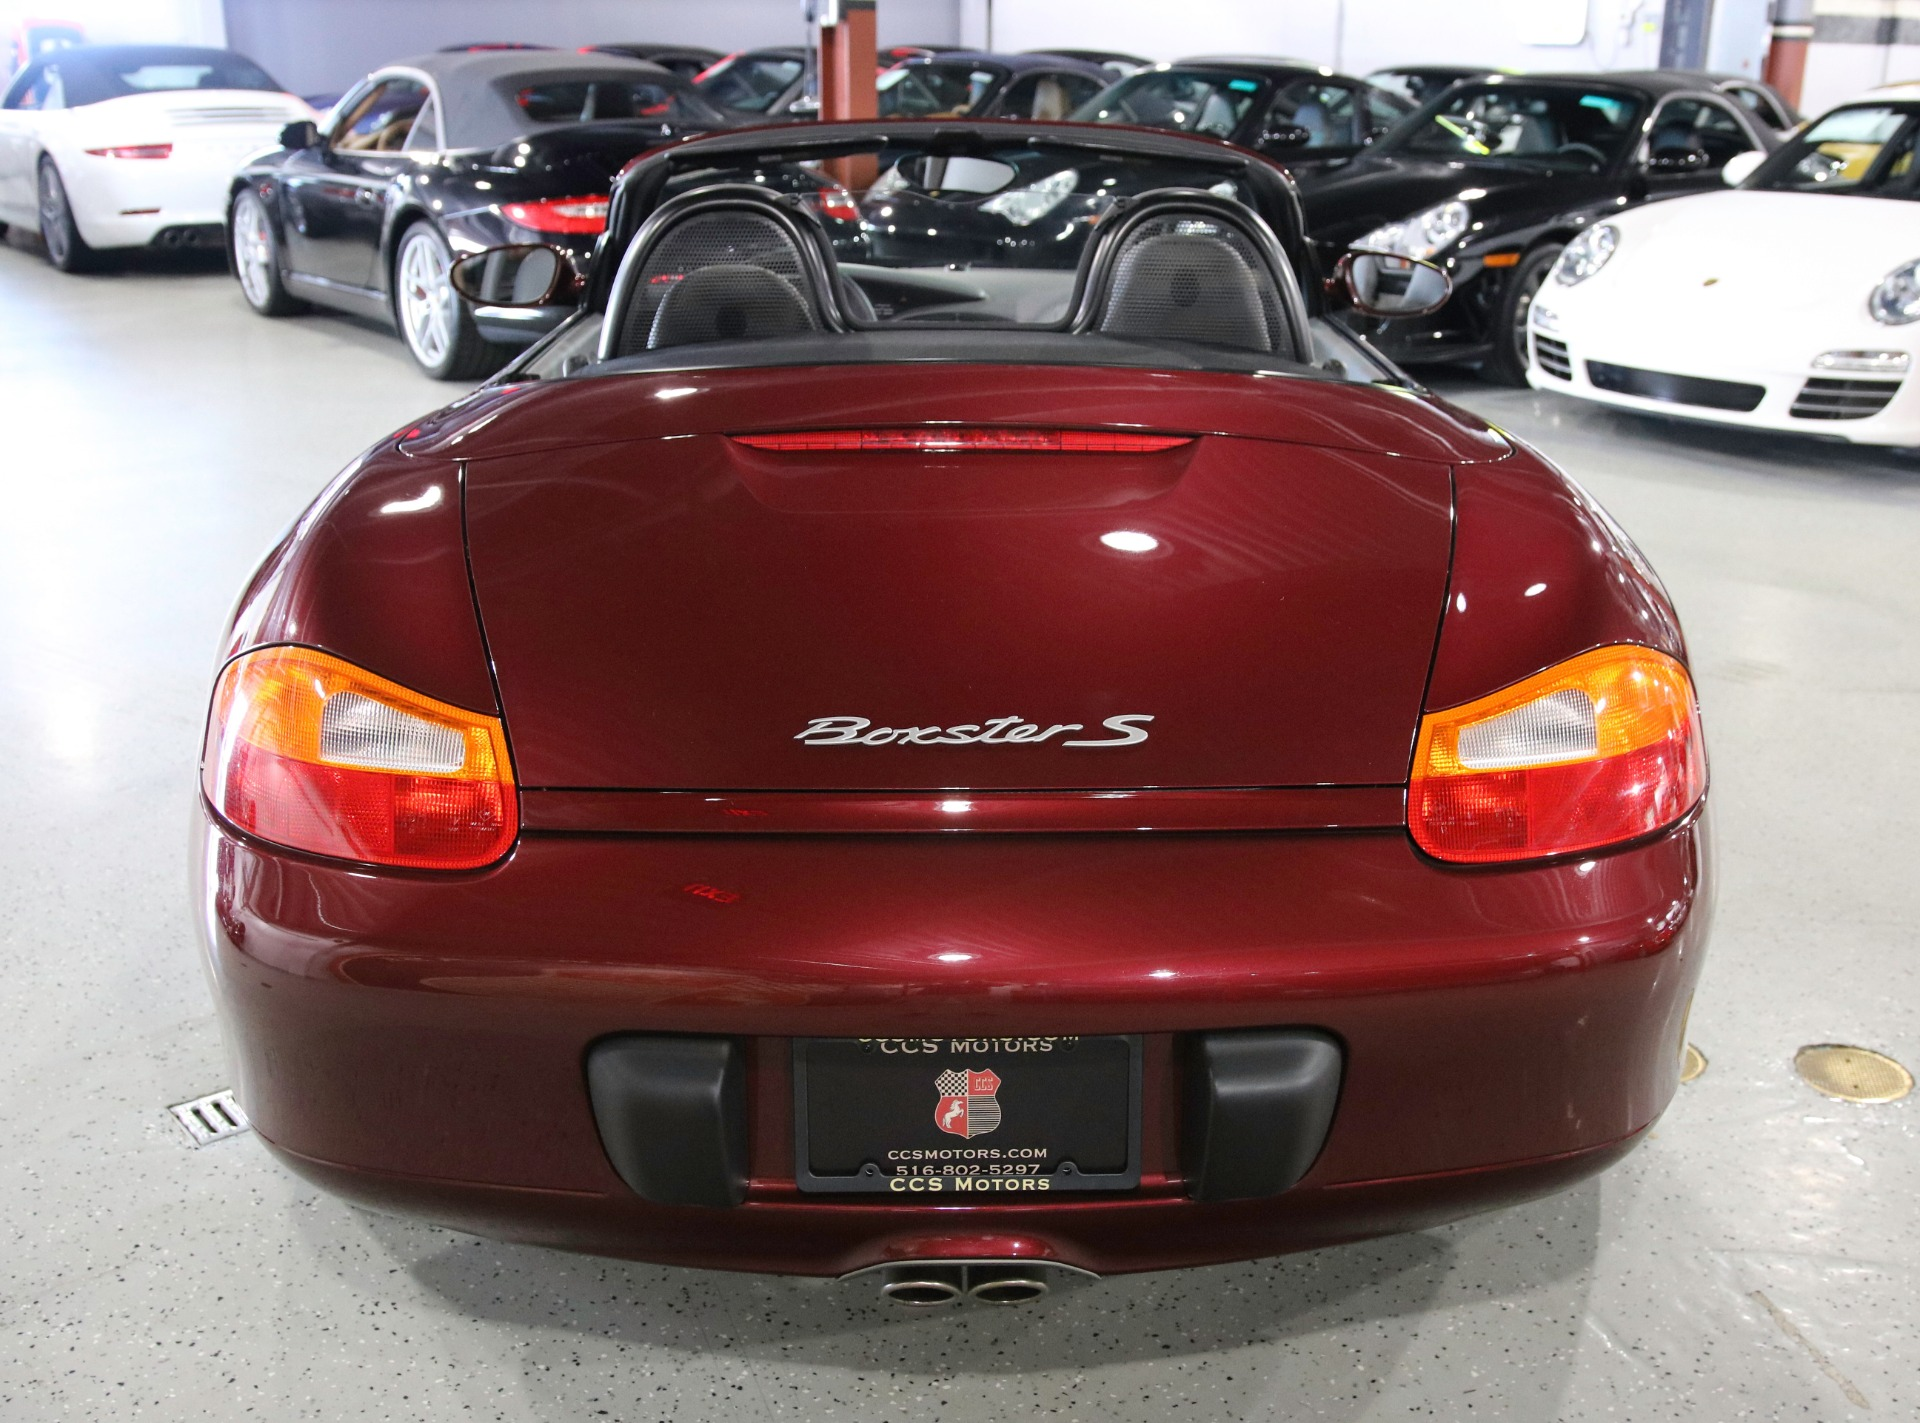 2000 porsche boxster s roadster stock 1210 for sale near oyster bay ny ny porsche dealer. Black Bedroom Furniture Sets. Home Design Ideas